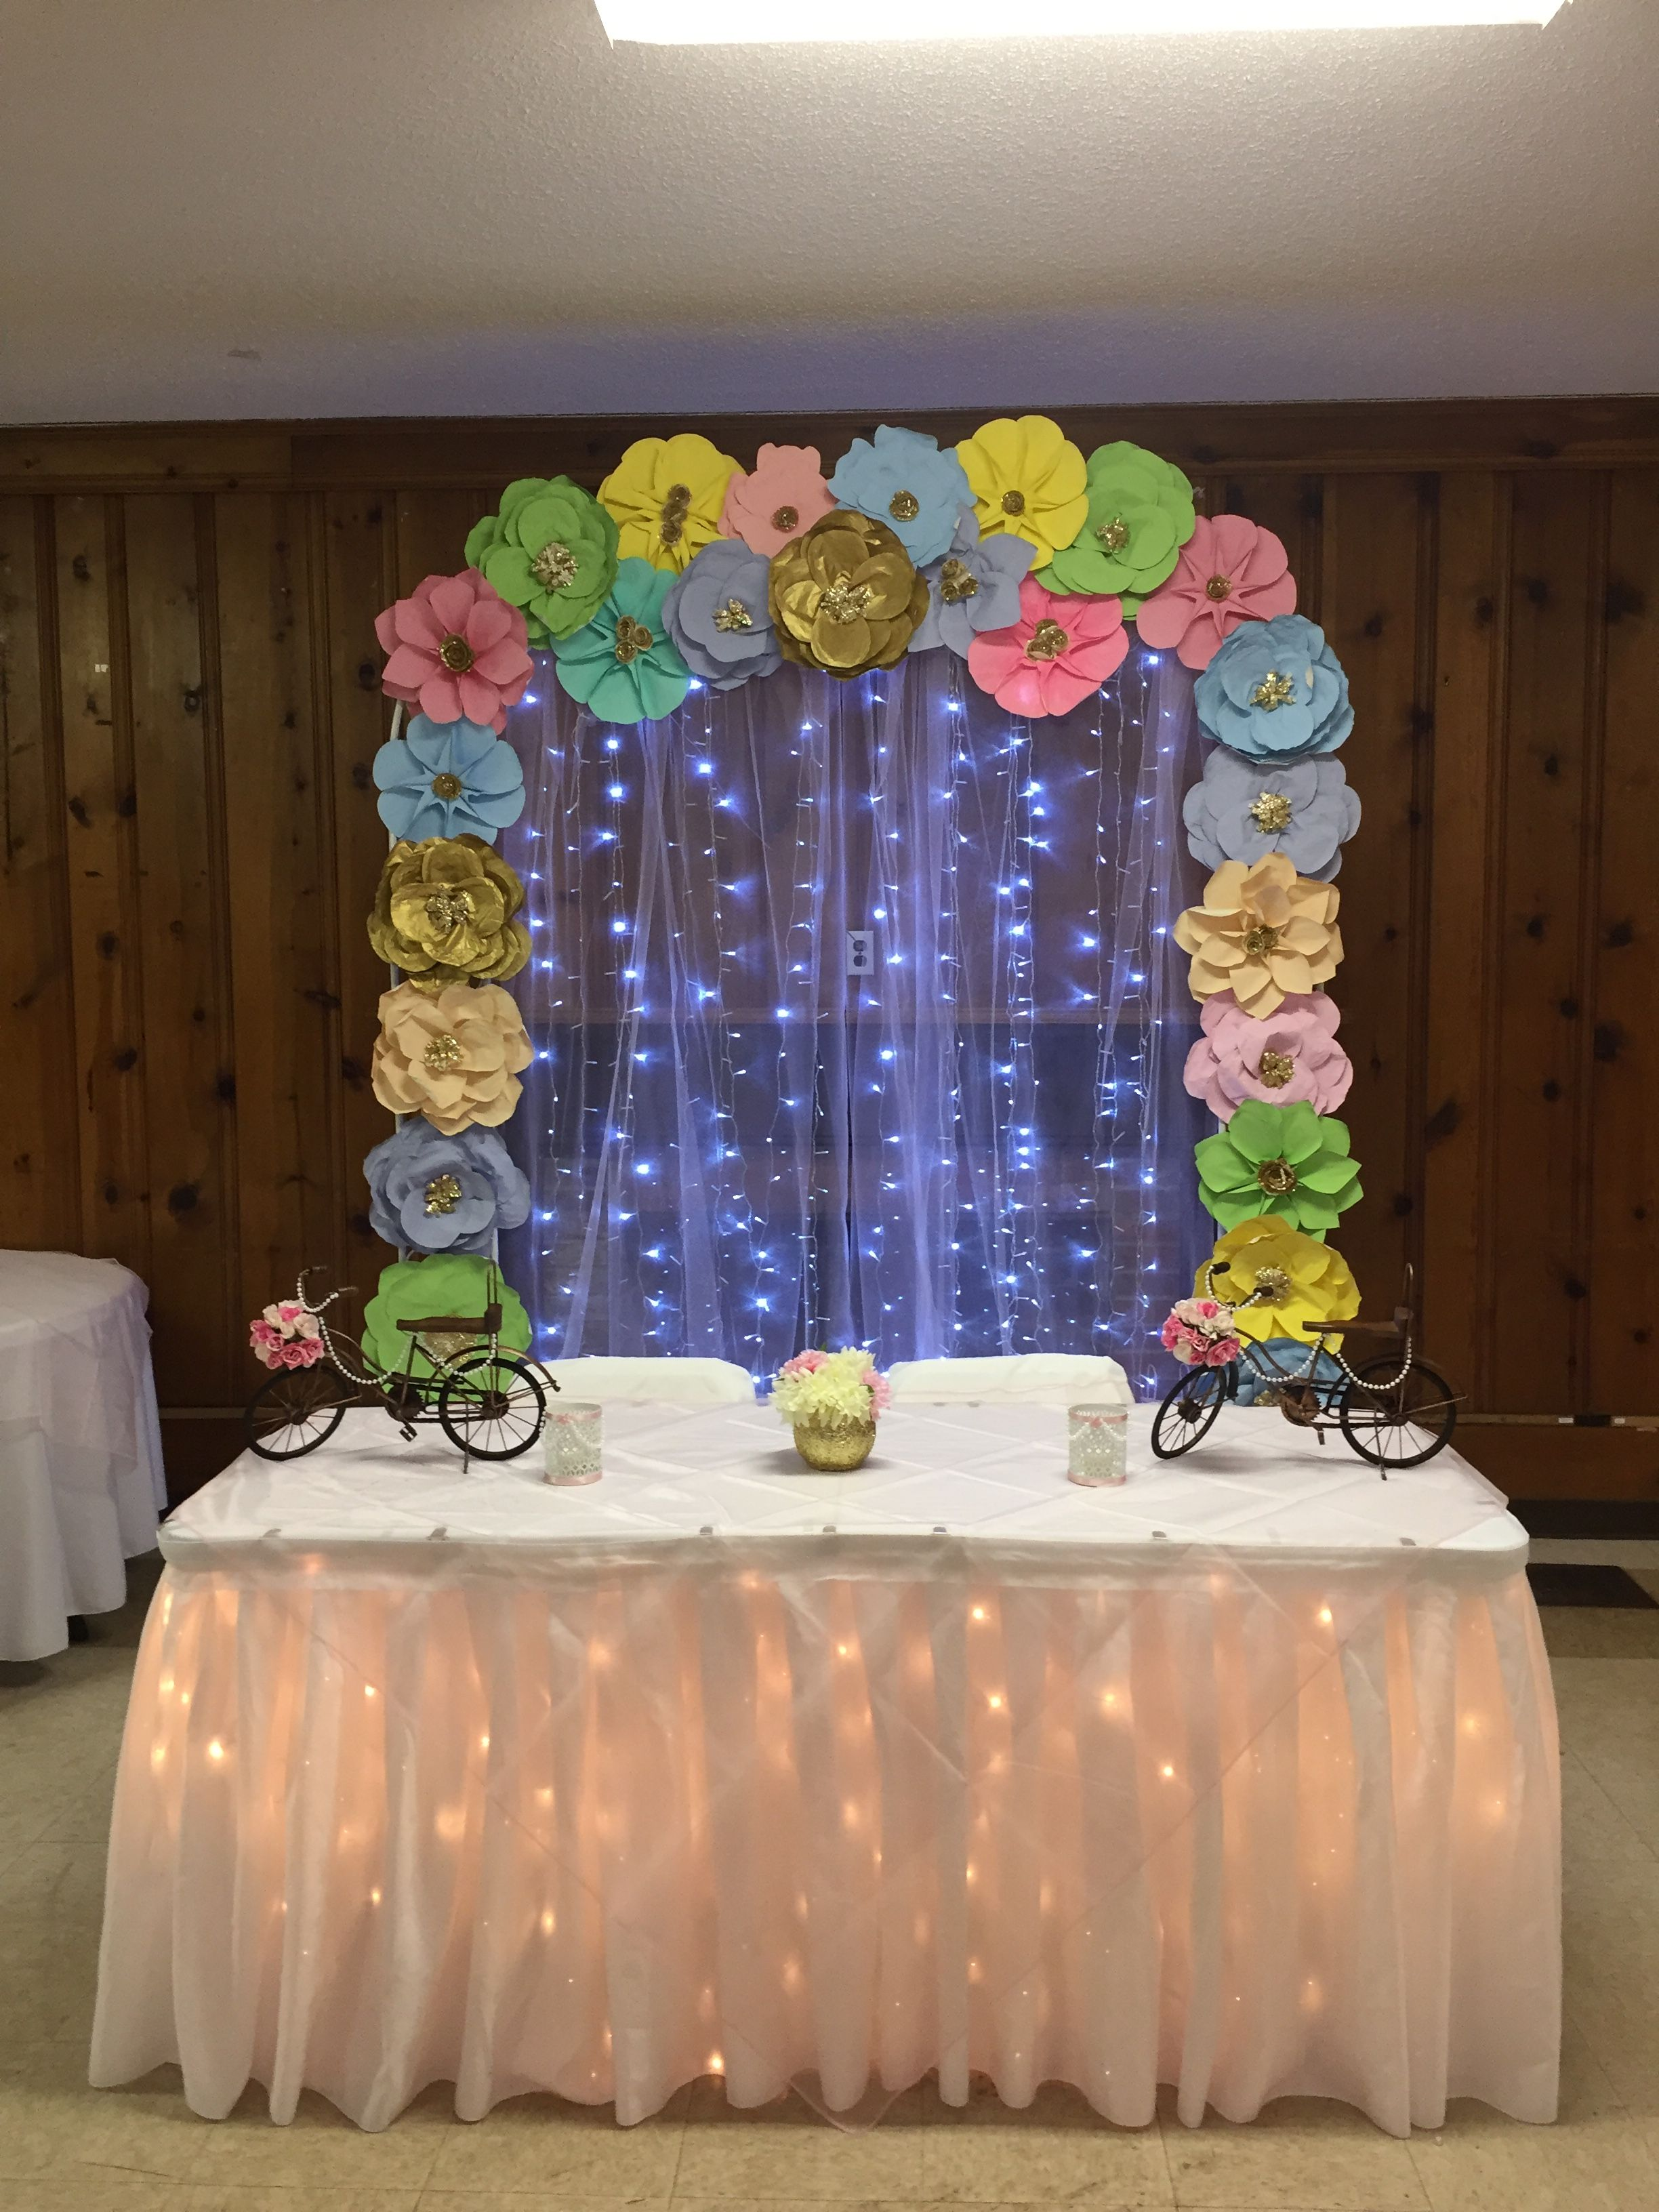 Decoraci n de baby shower con arco de flores de papel - Decoracion con luces ...